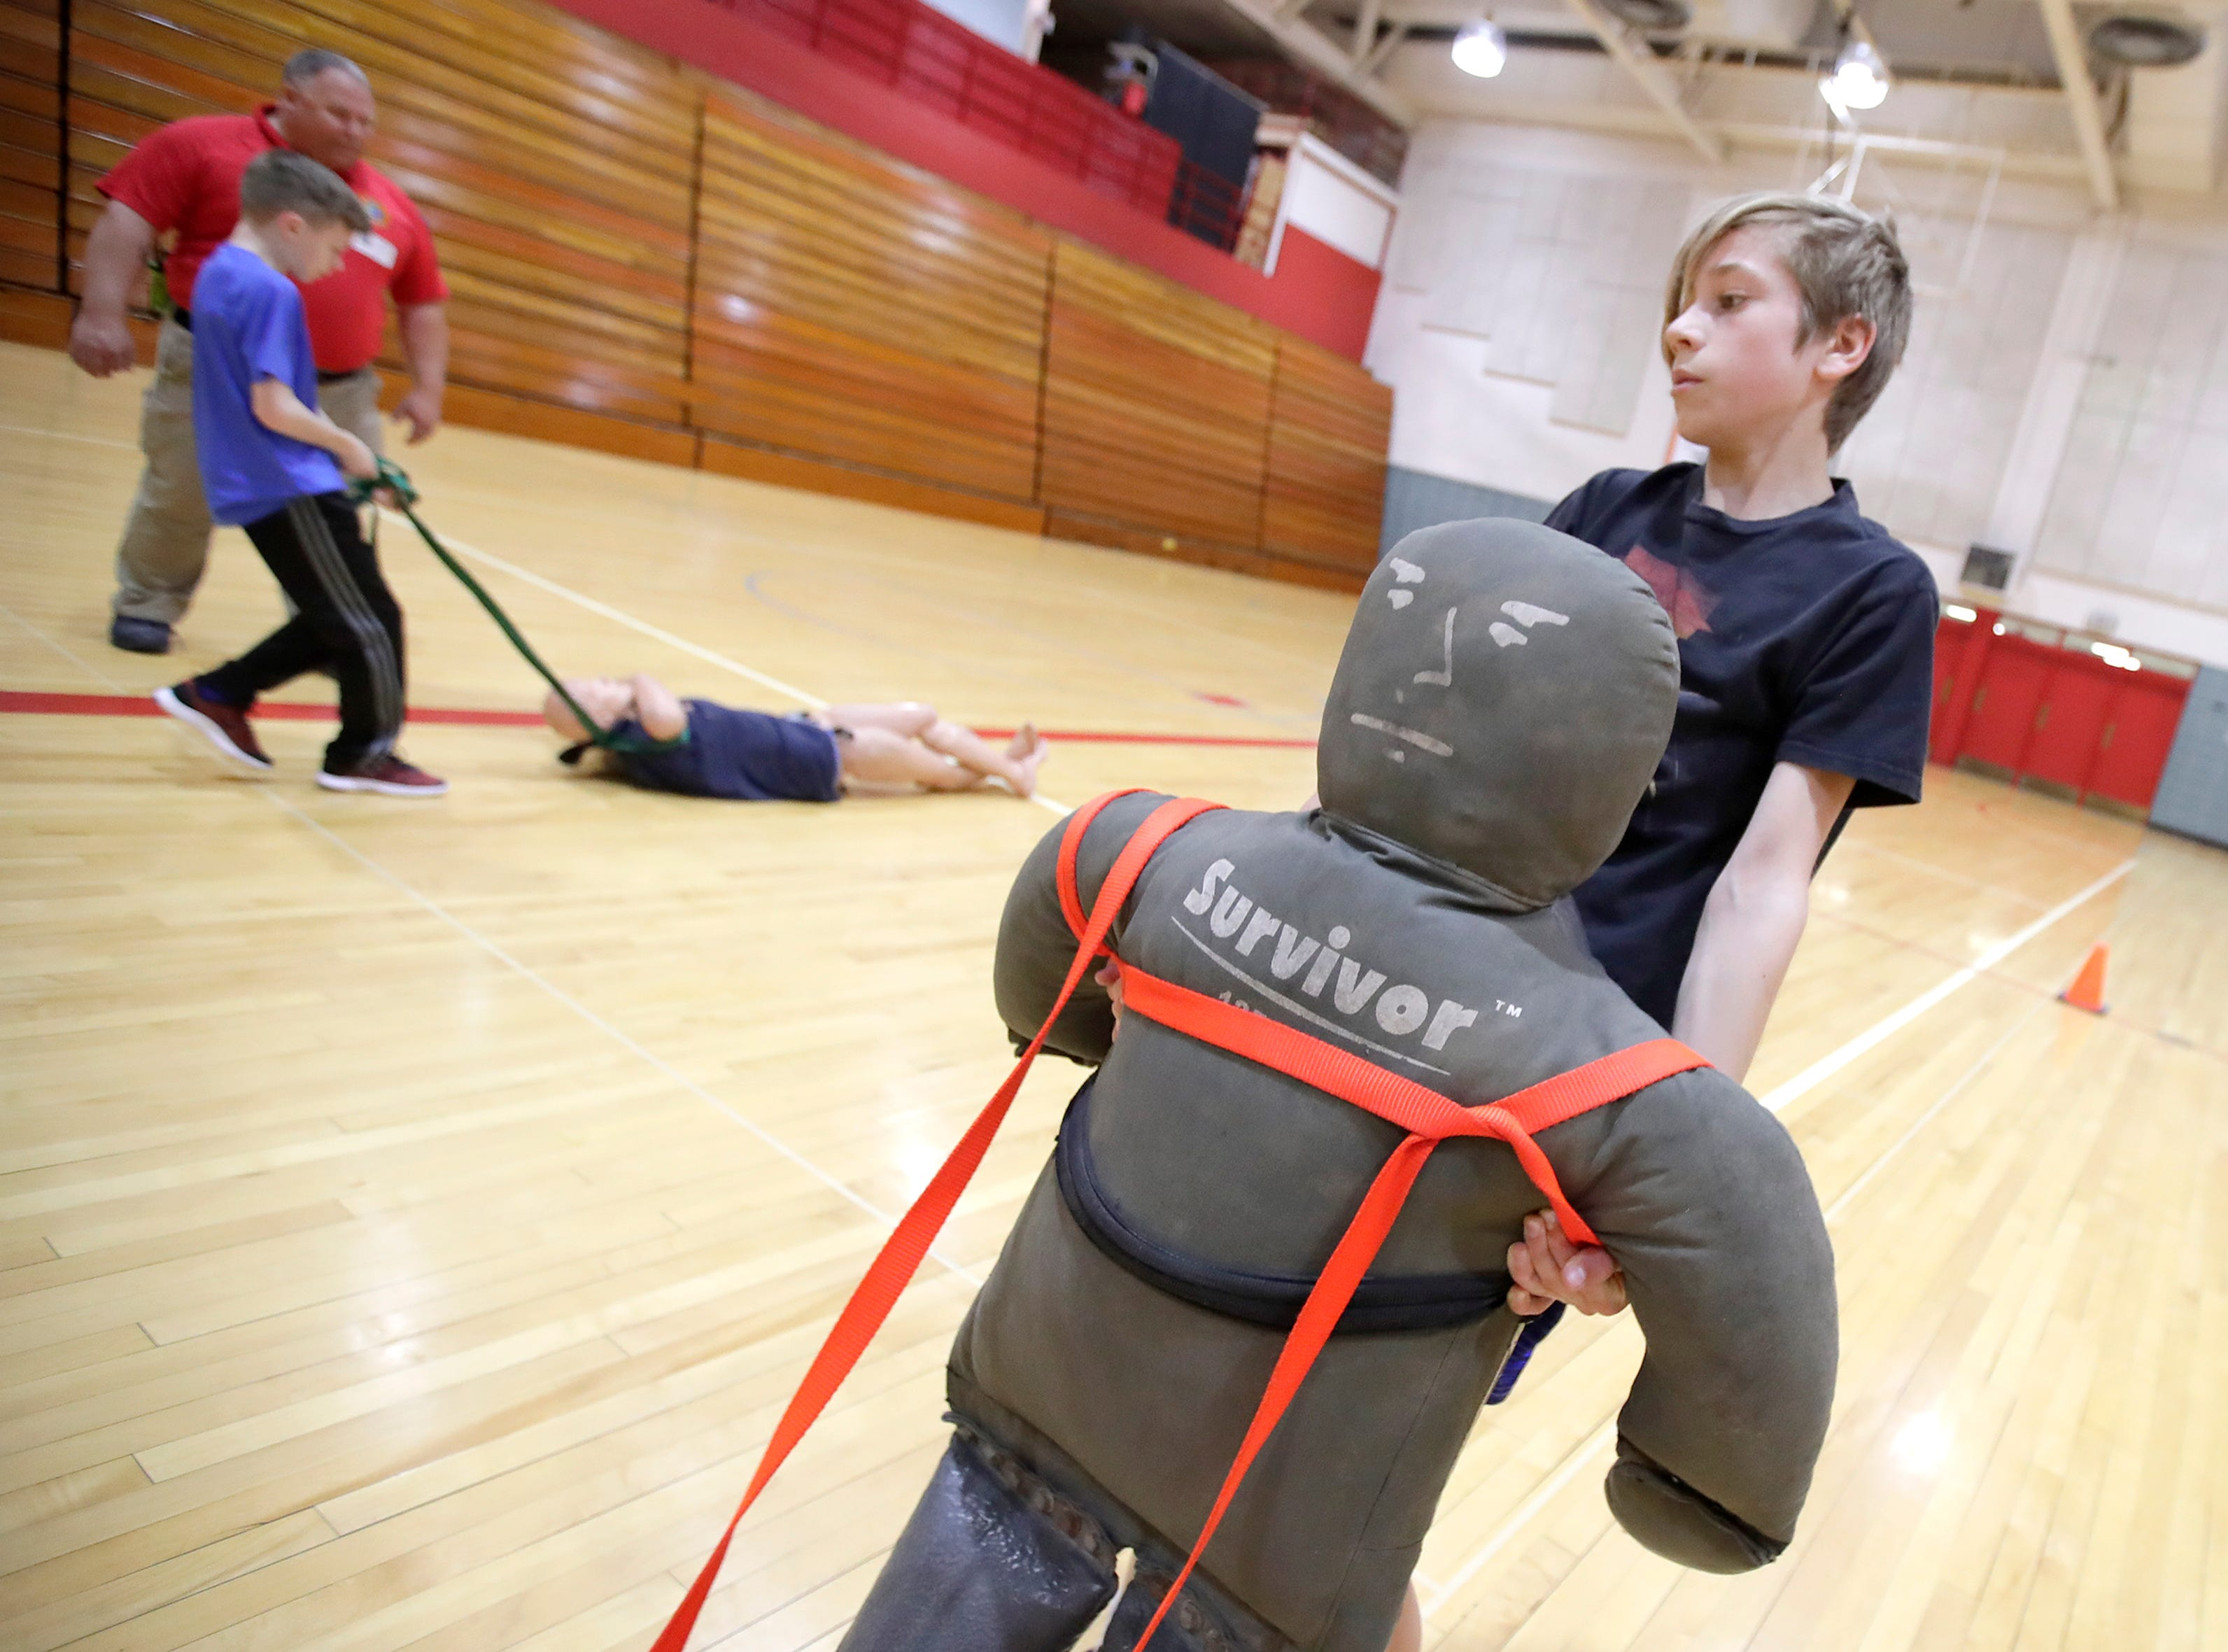 Alex Karlin, in 7th grade at Shattuck Middle School, carries a training dummy through the gym Thursday, April 18, 2019, in Neenah, Wis. Neenah-Menasha Fire Rescue ran fitness activities to show students some of the physical demands of firefighting. Danny Damiani/USA TODAY NETWORK-Wisconsin